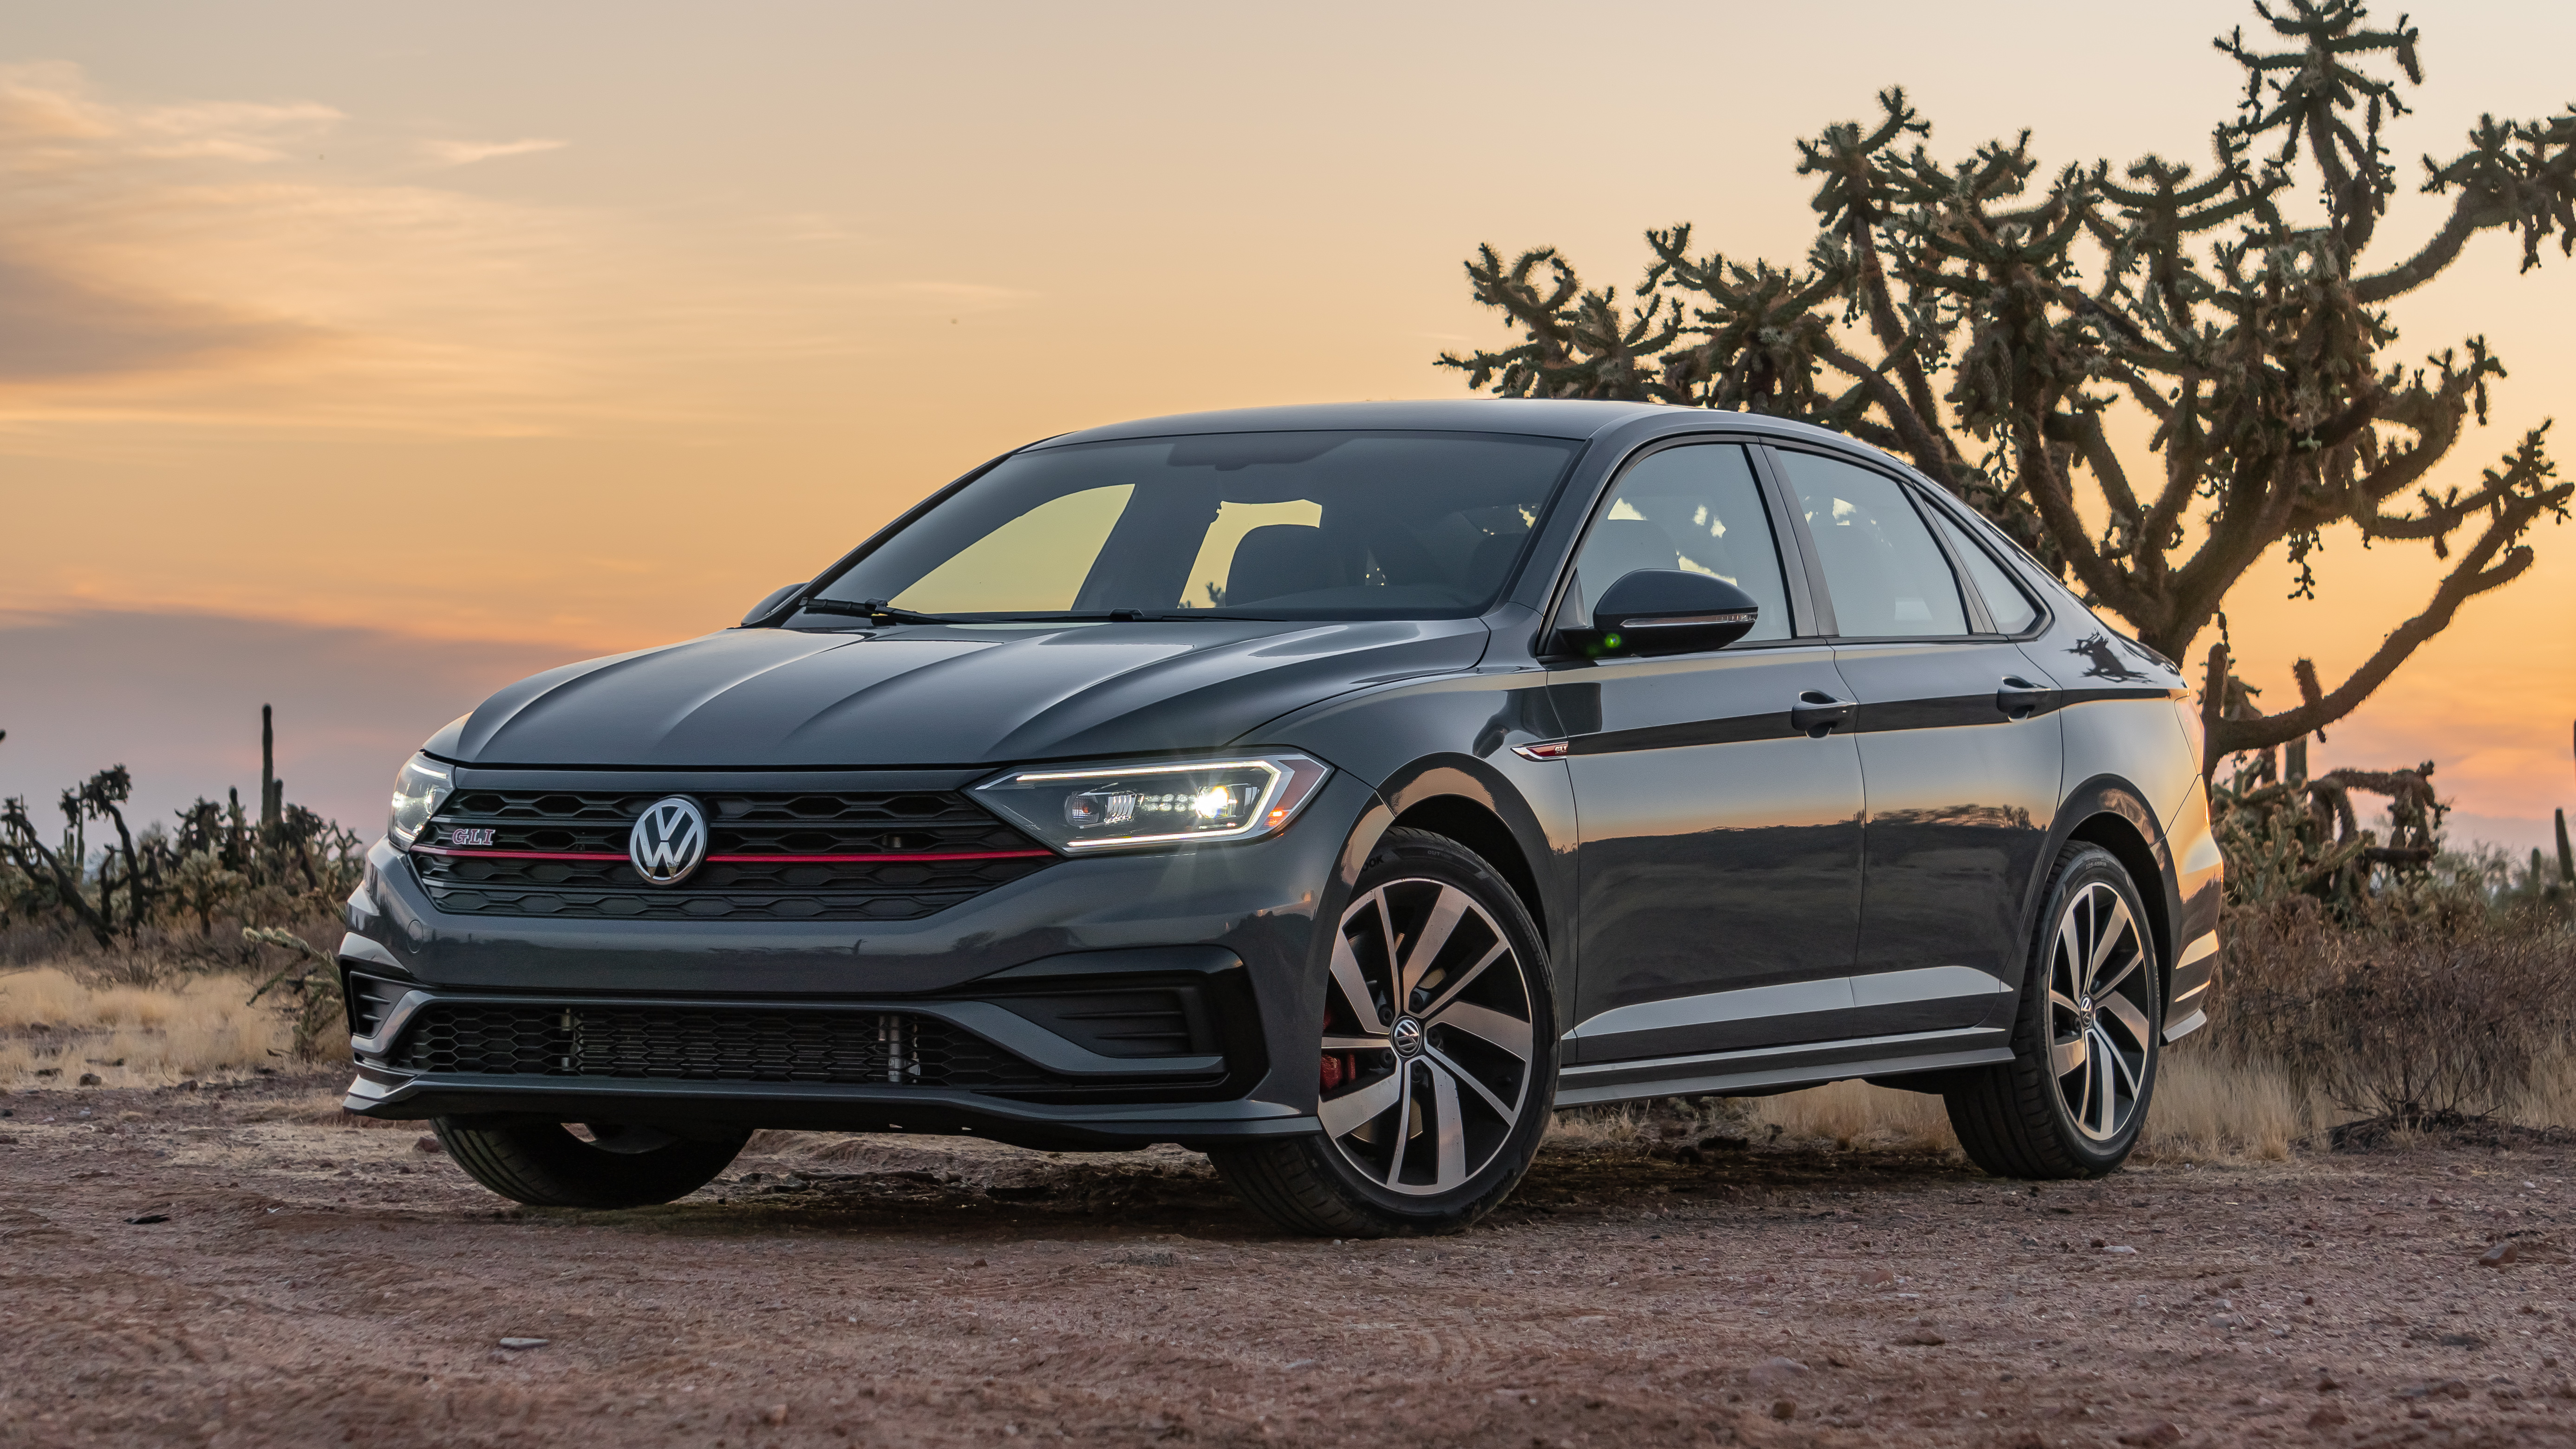 limited slip diff launch control and 30 mpg s 2019 volkswagen jetta gli six speed blog six speed blog